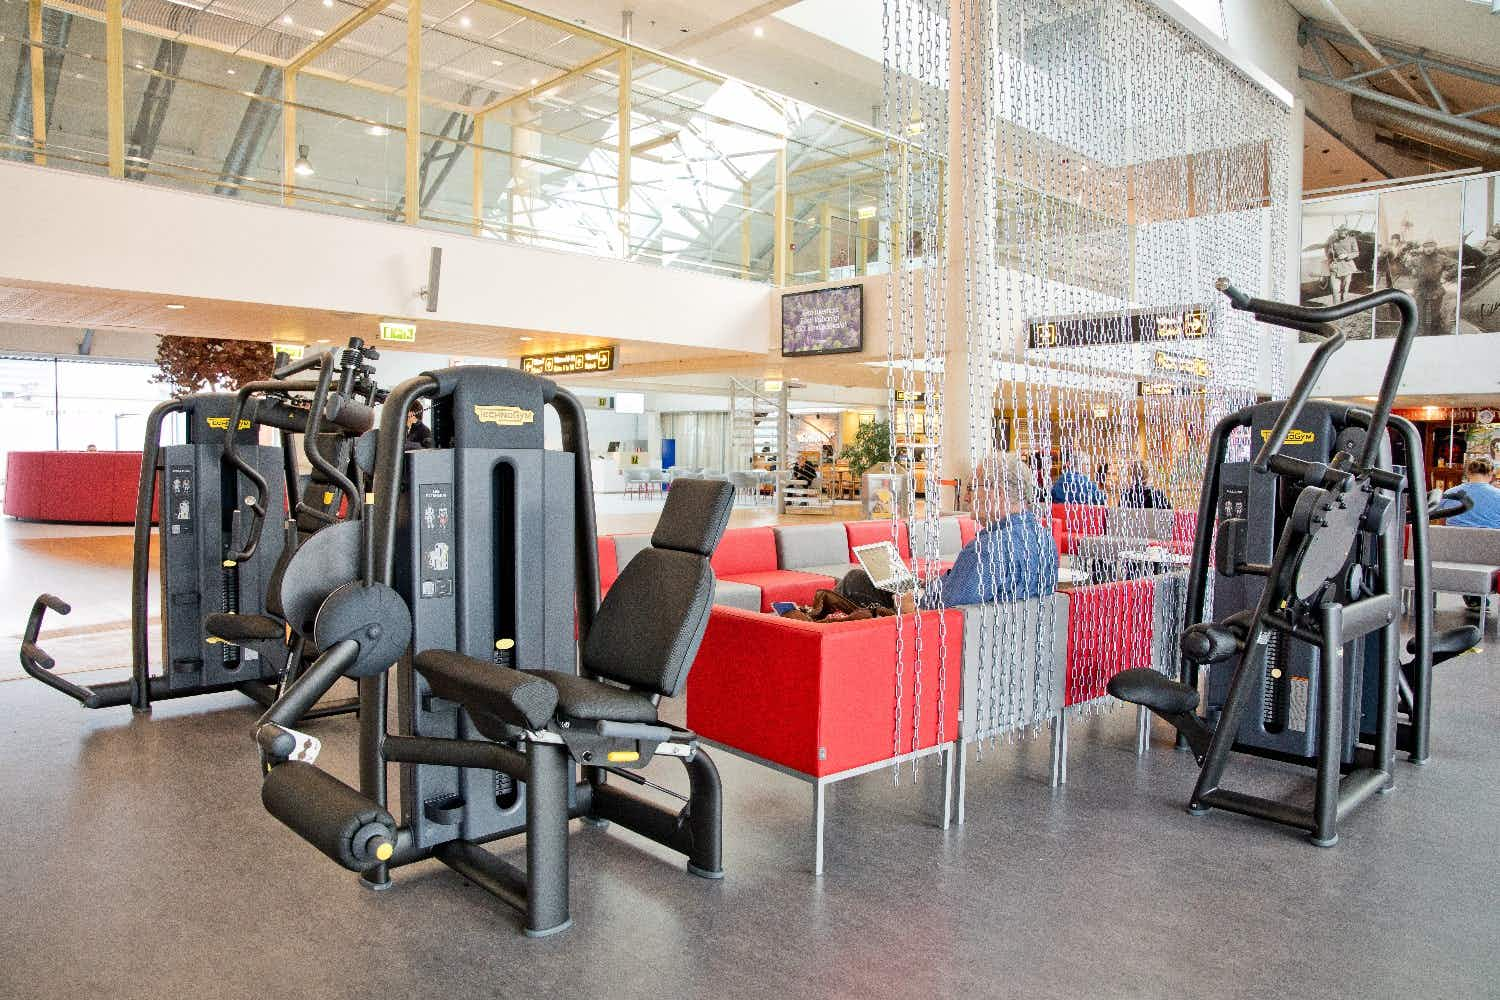 Europe's first airport terminal gym opens in Estonia